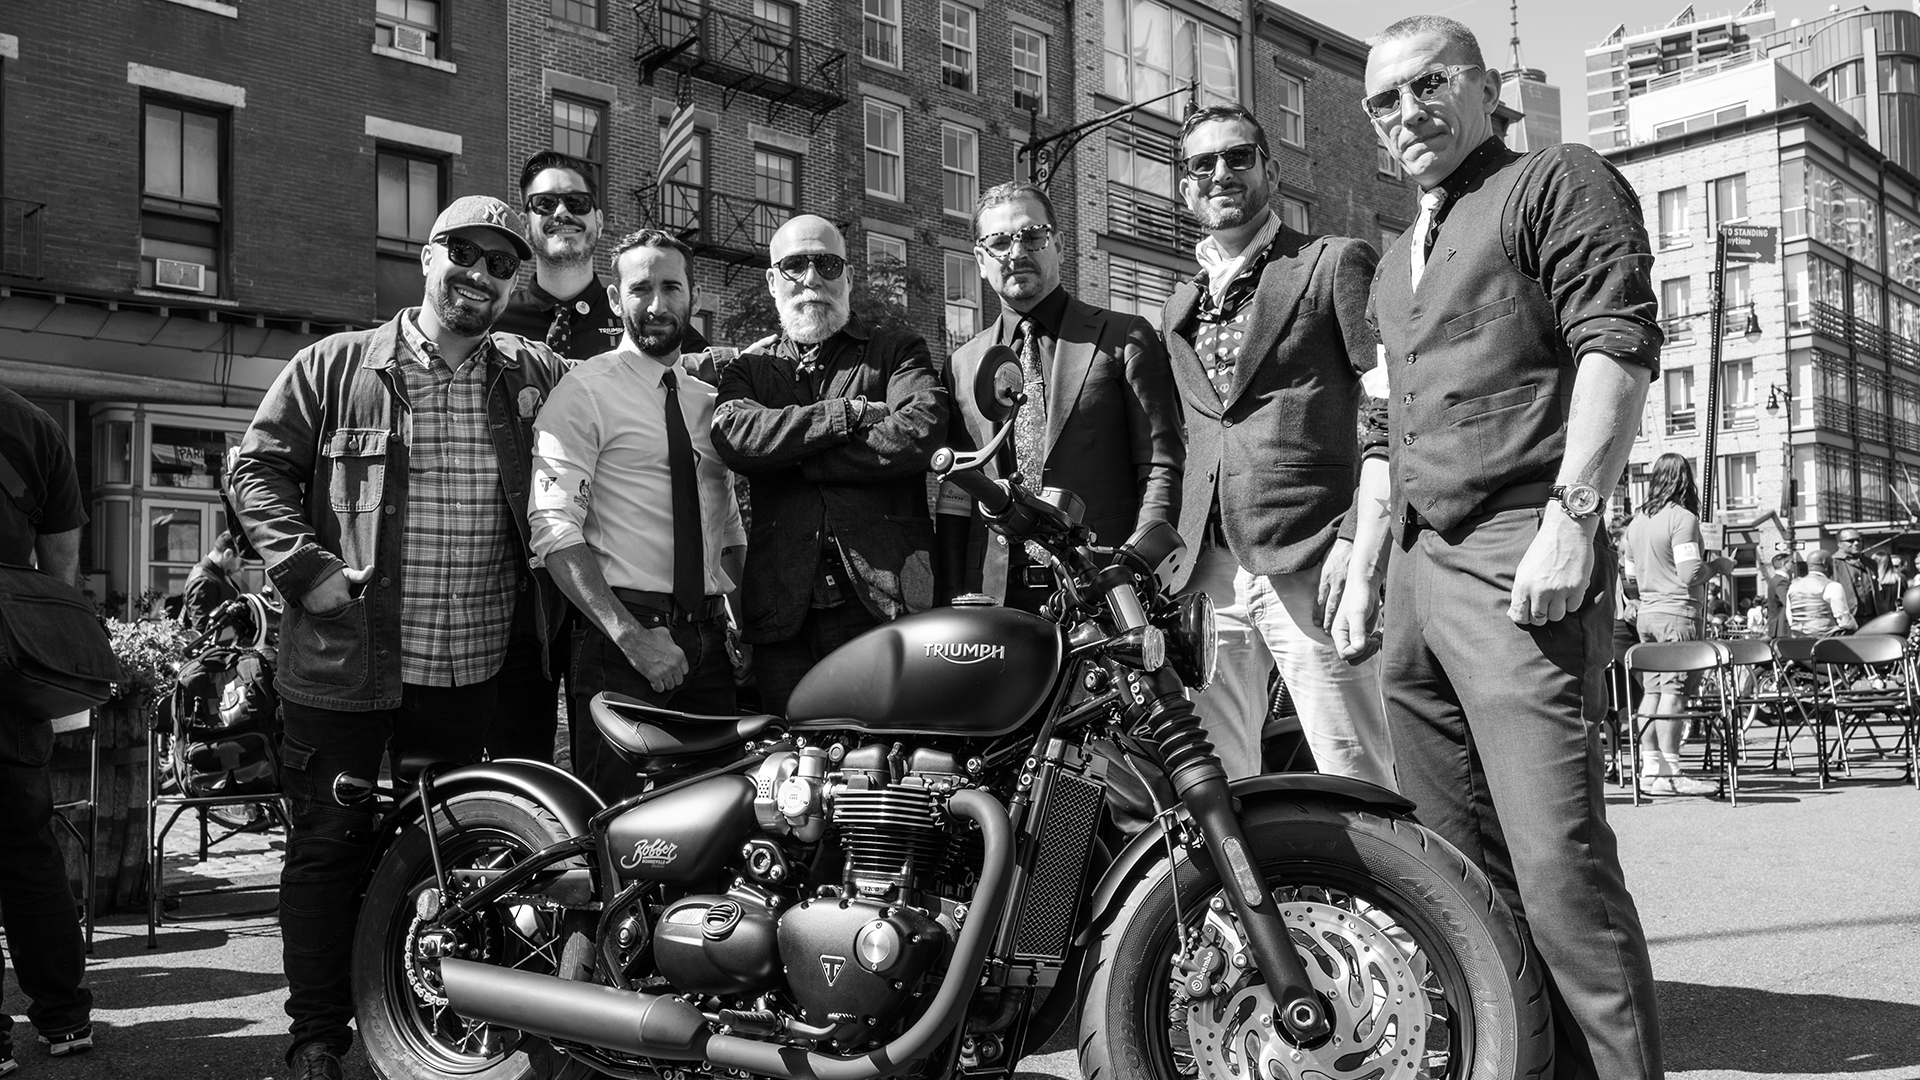 Distinguished gentlemen ready for their ride with Triumph in shot